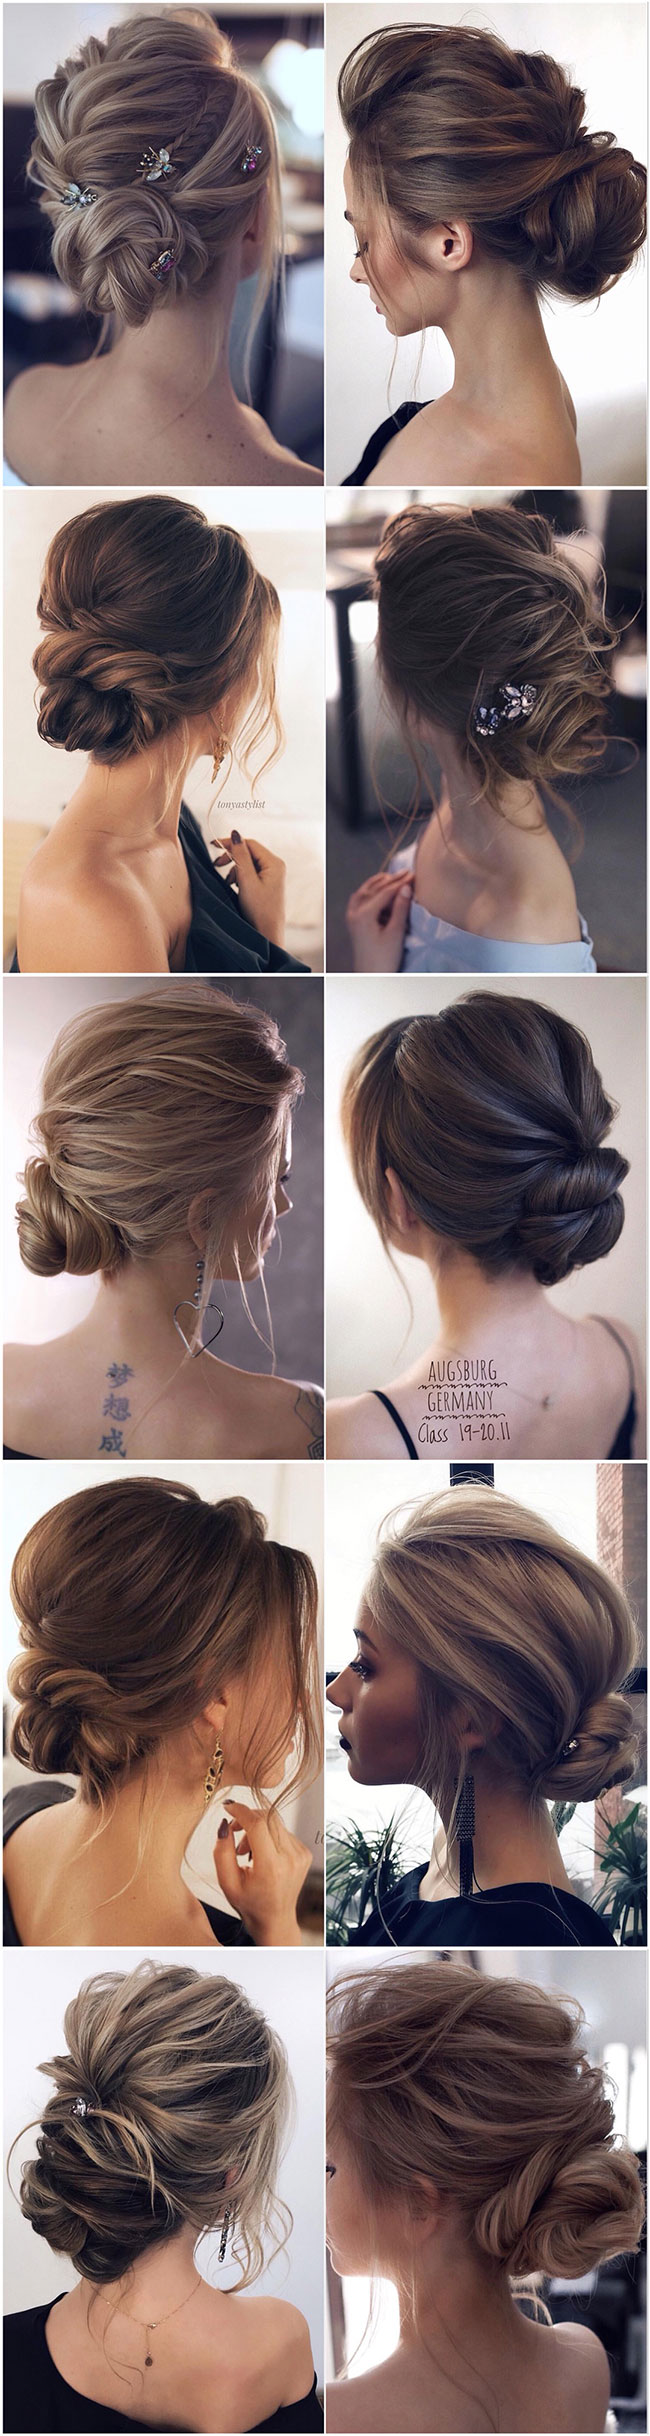 60 Best Wedding Hairstyles From Tonyastylist For The Modern Bride